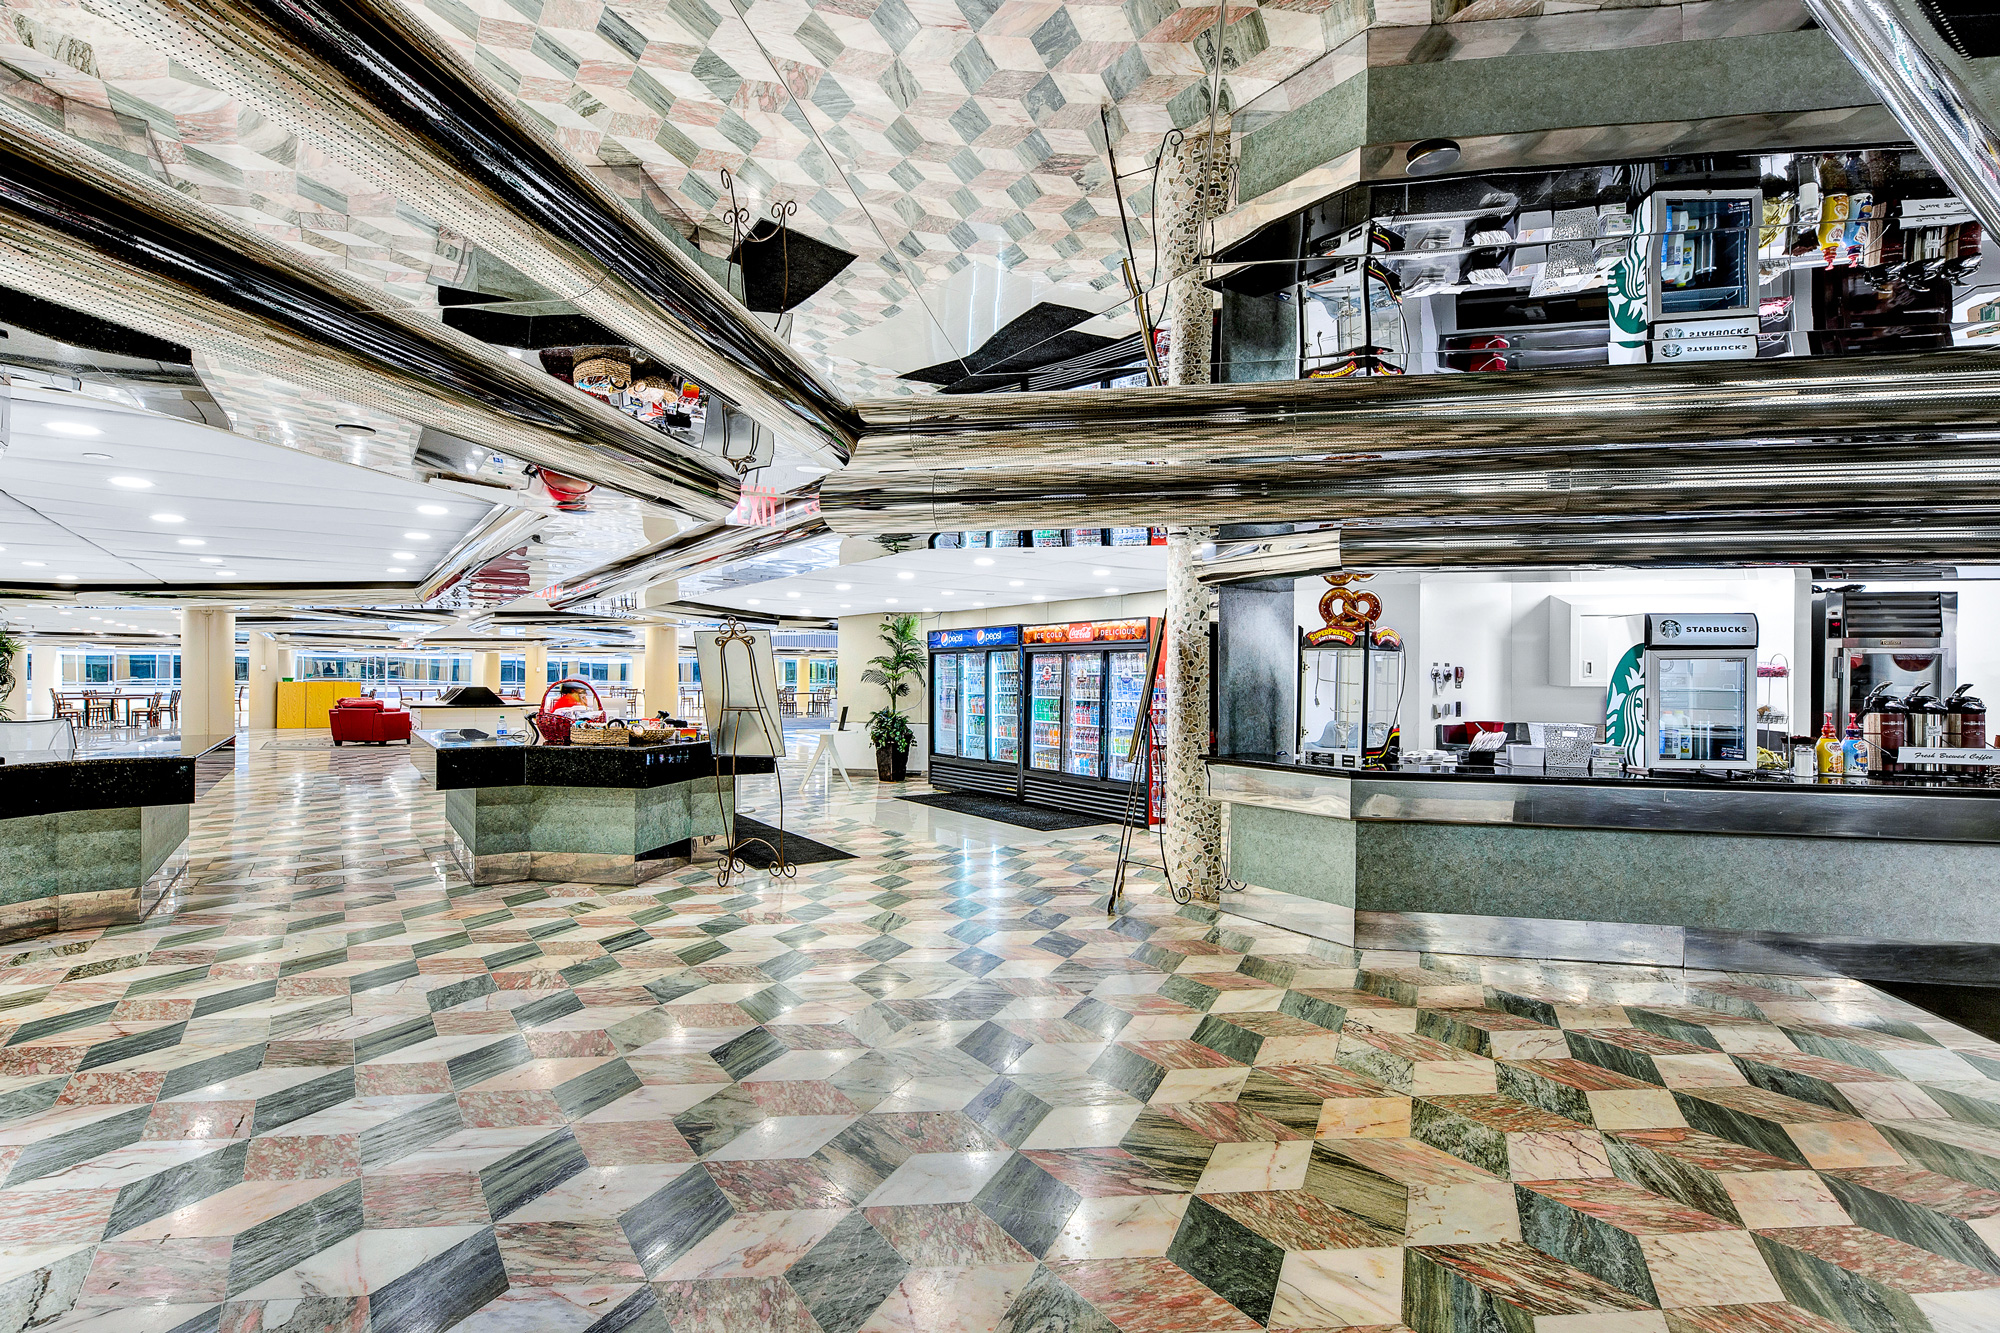 A cafeteria with chrome ceilings